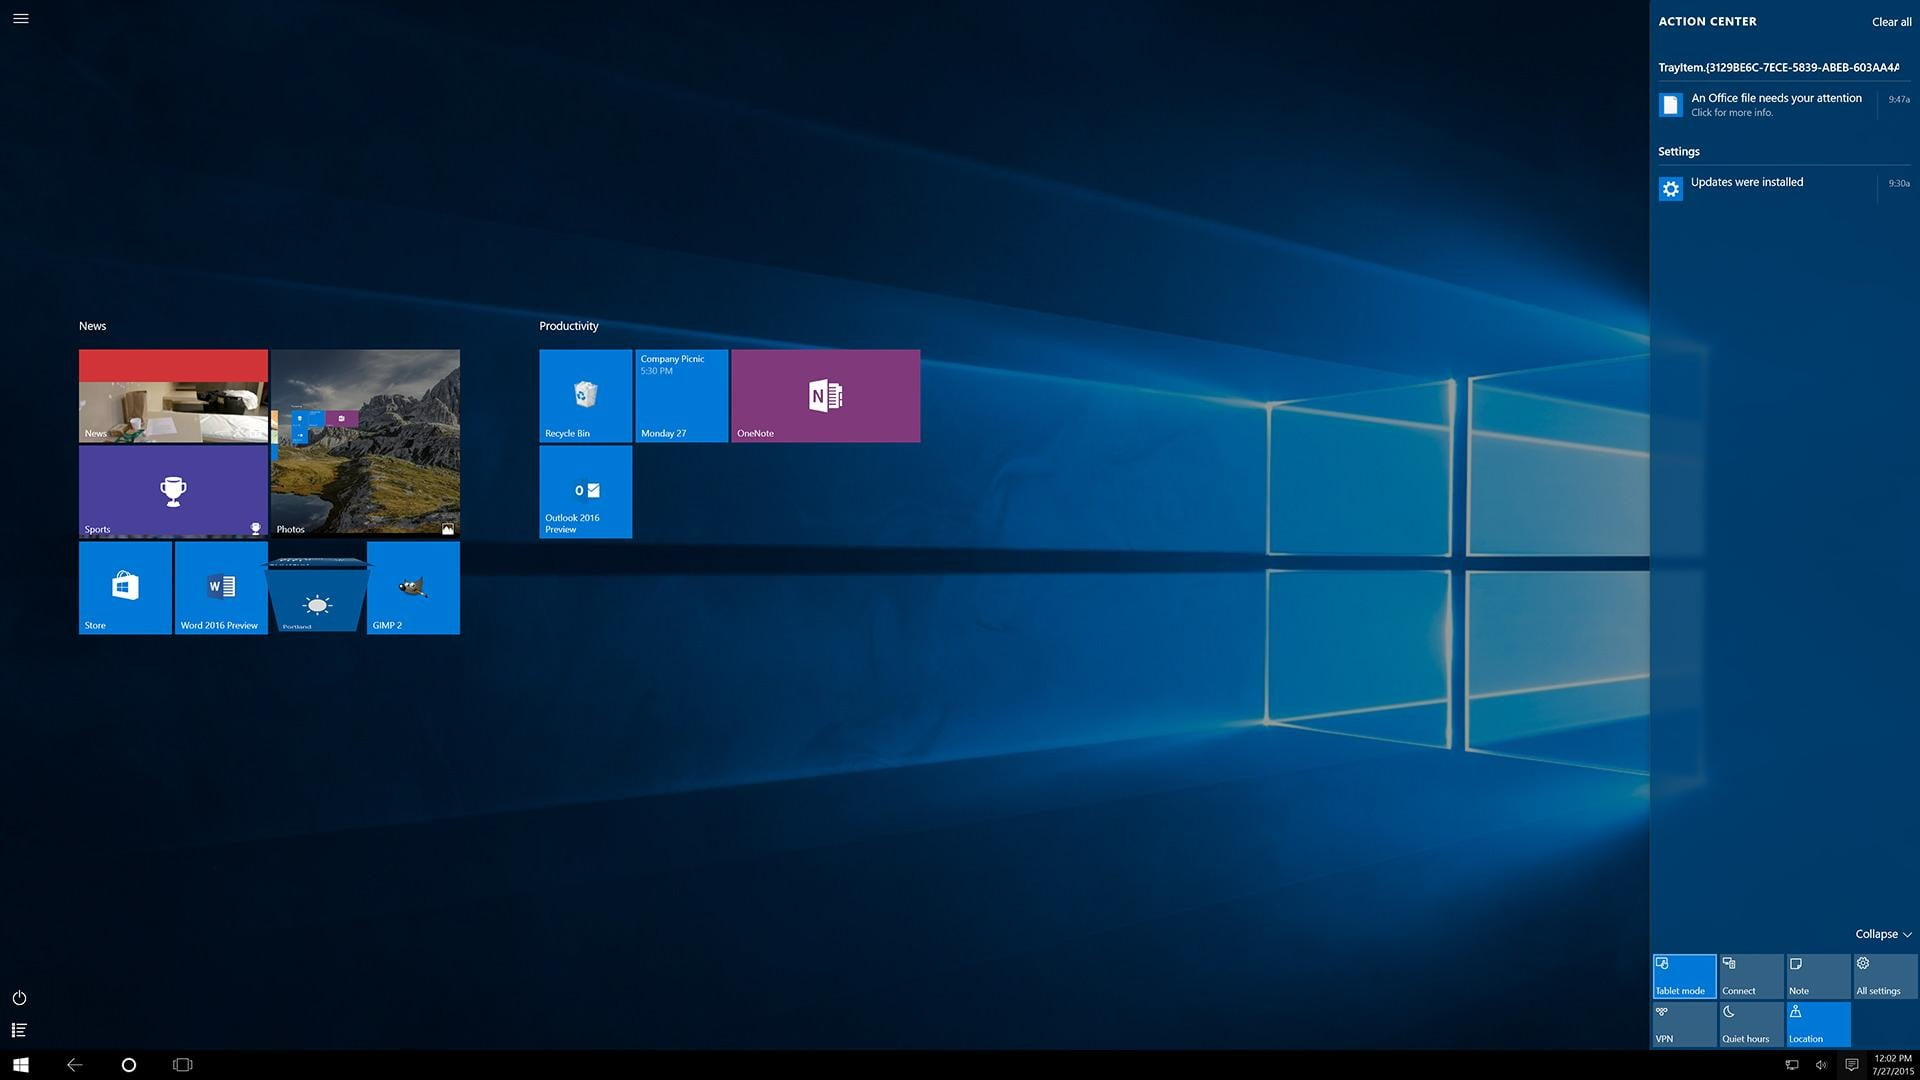 windows 10 review action